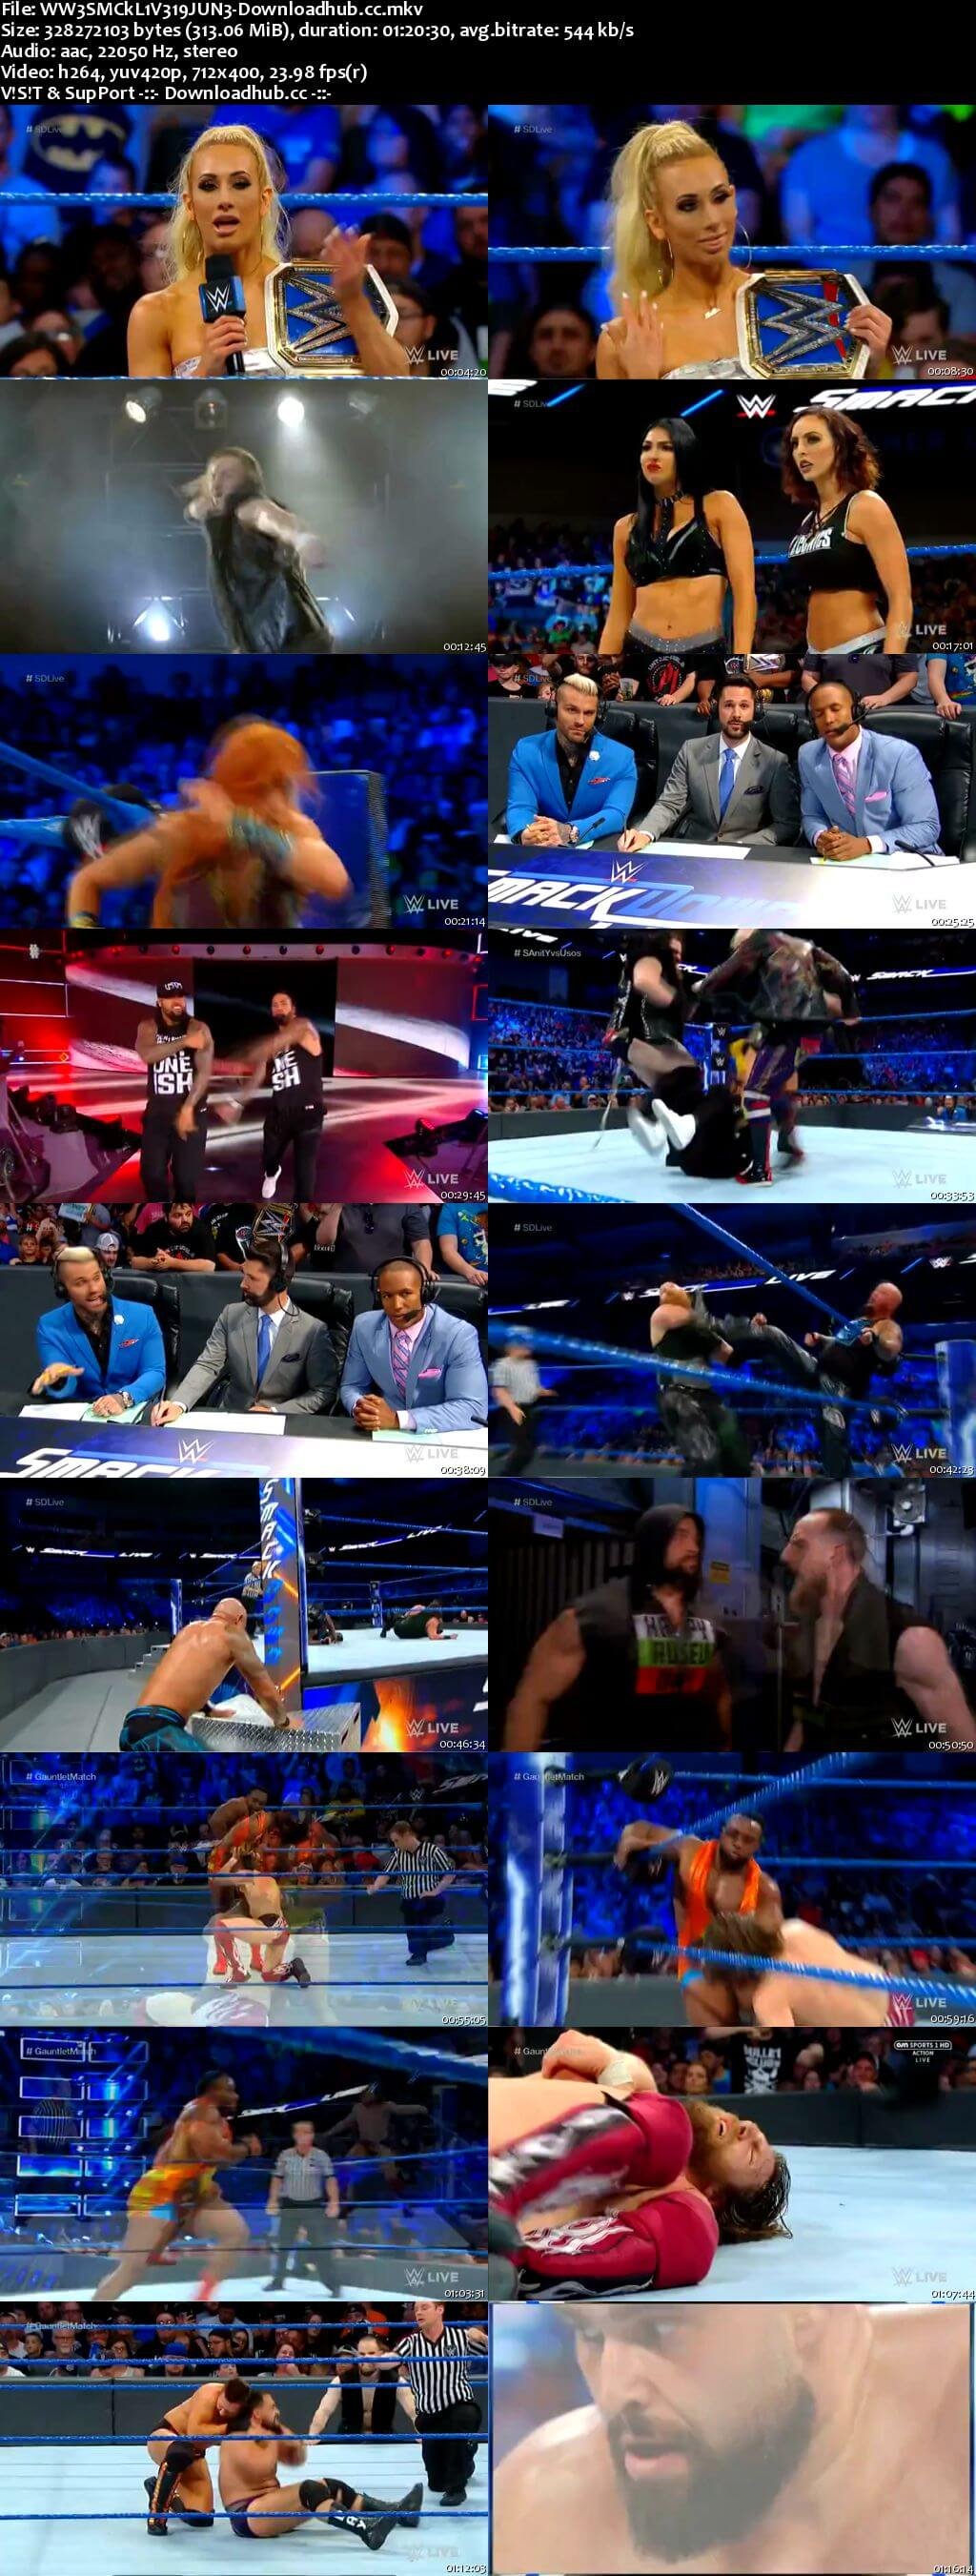 WWE Smackdown Live 19 June 2018 480p HDTV Download